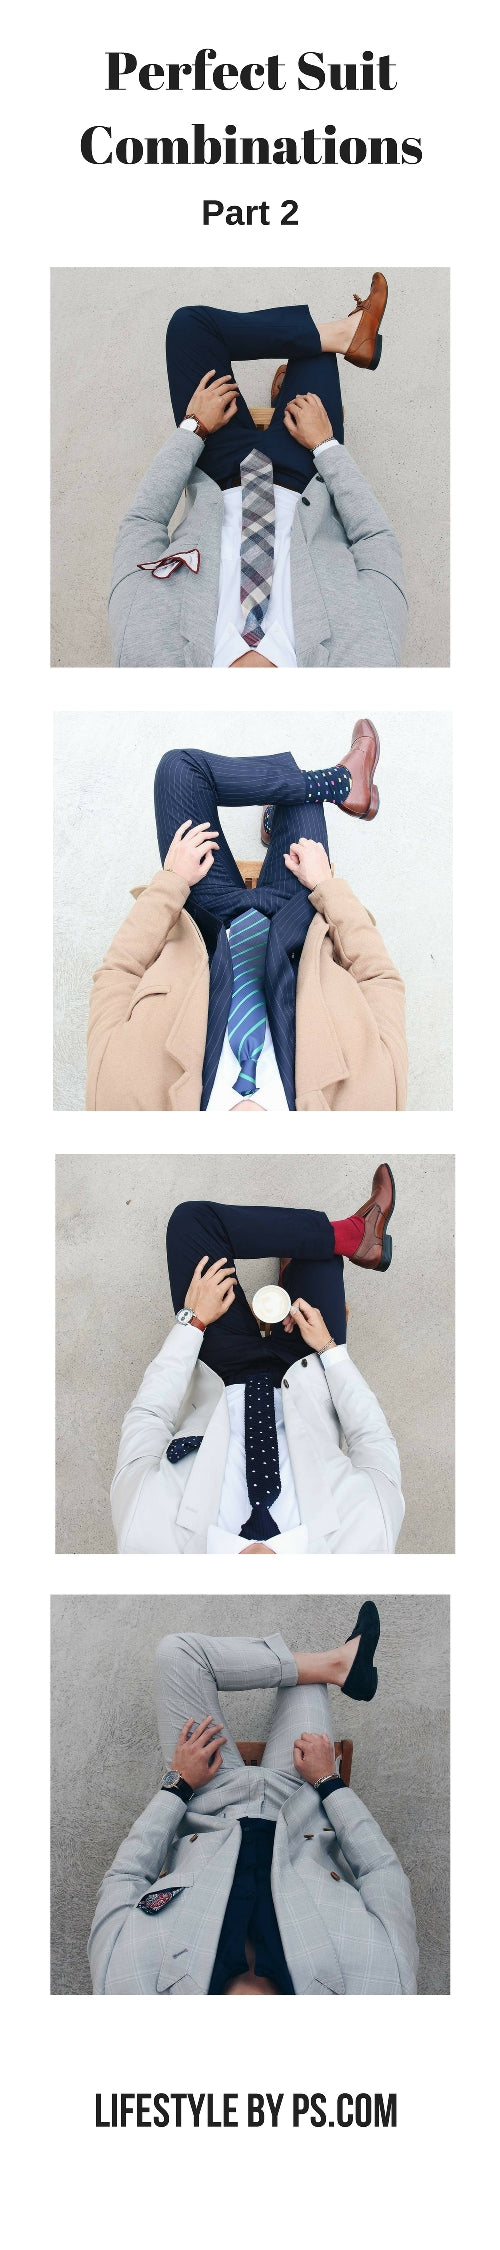 Perfect Suit Combinations For Men